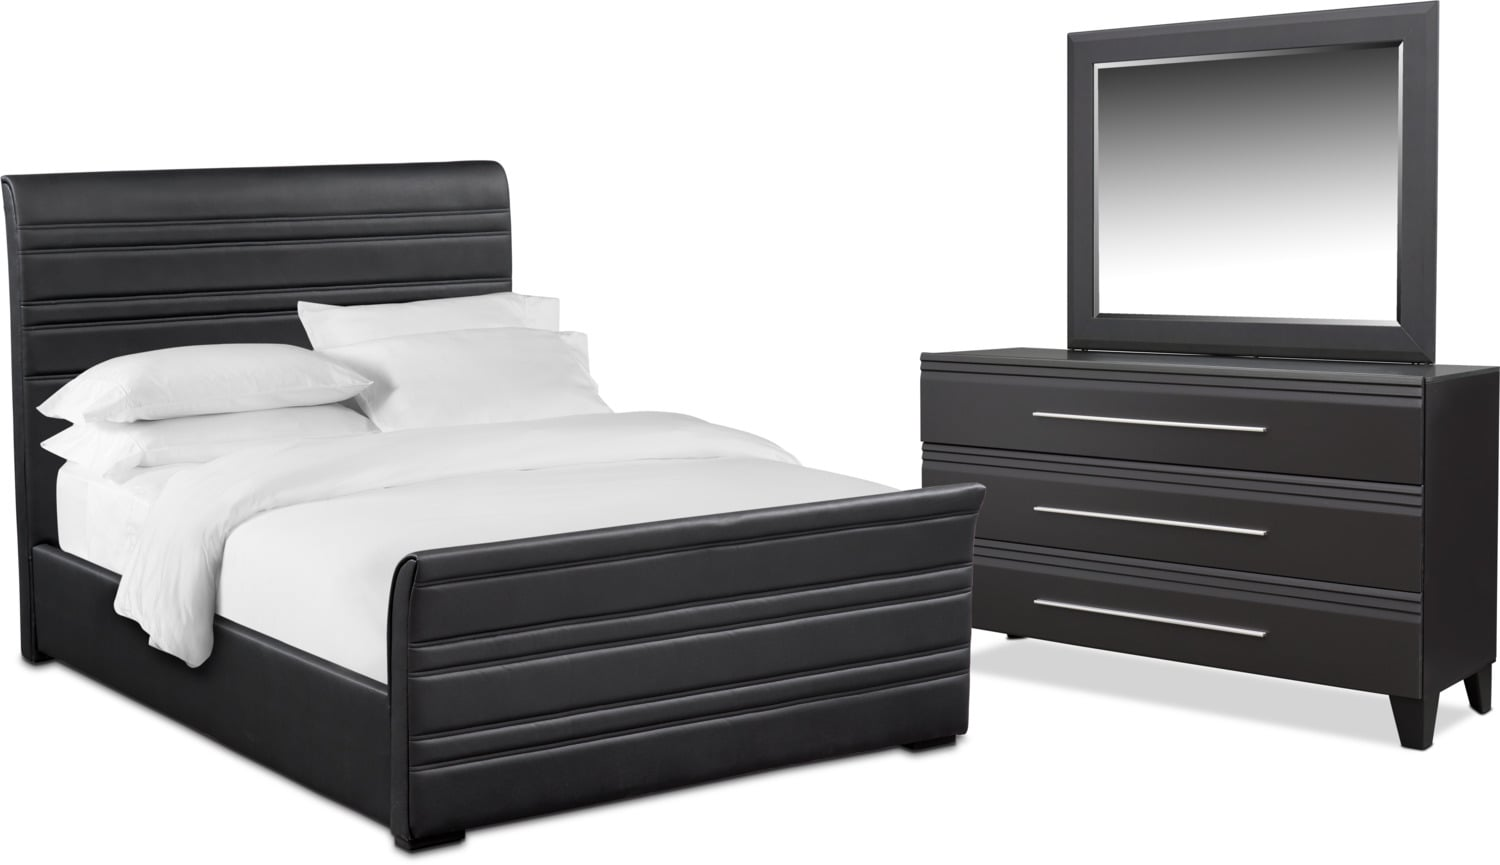 Bedroom Furniture - Allori 5-Piece Upholstered Bedroom Set with Dresser and Mirror